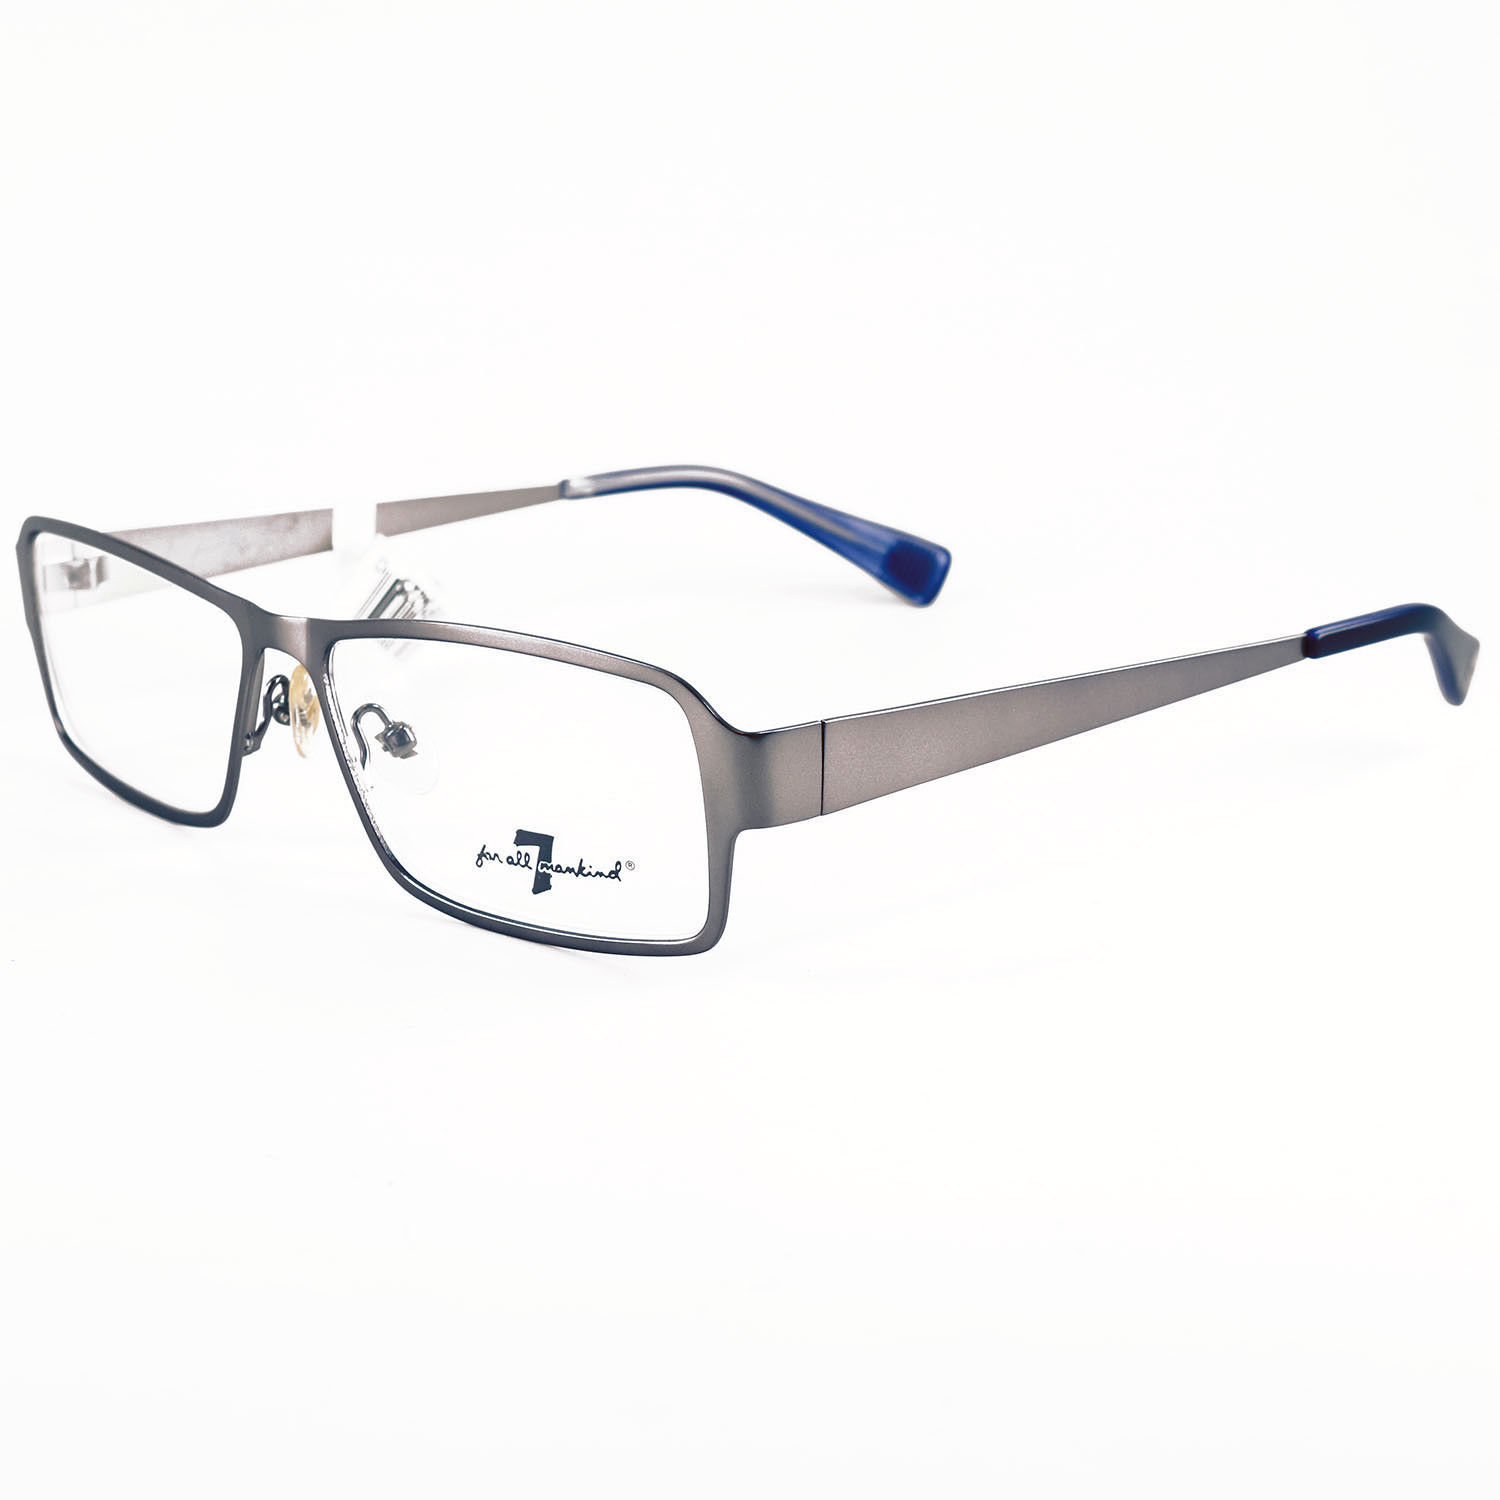 7e80afbd59d Authentic 7 For All Mankind Frame 705 and 24 similar items